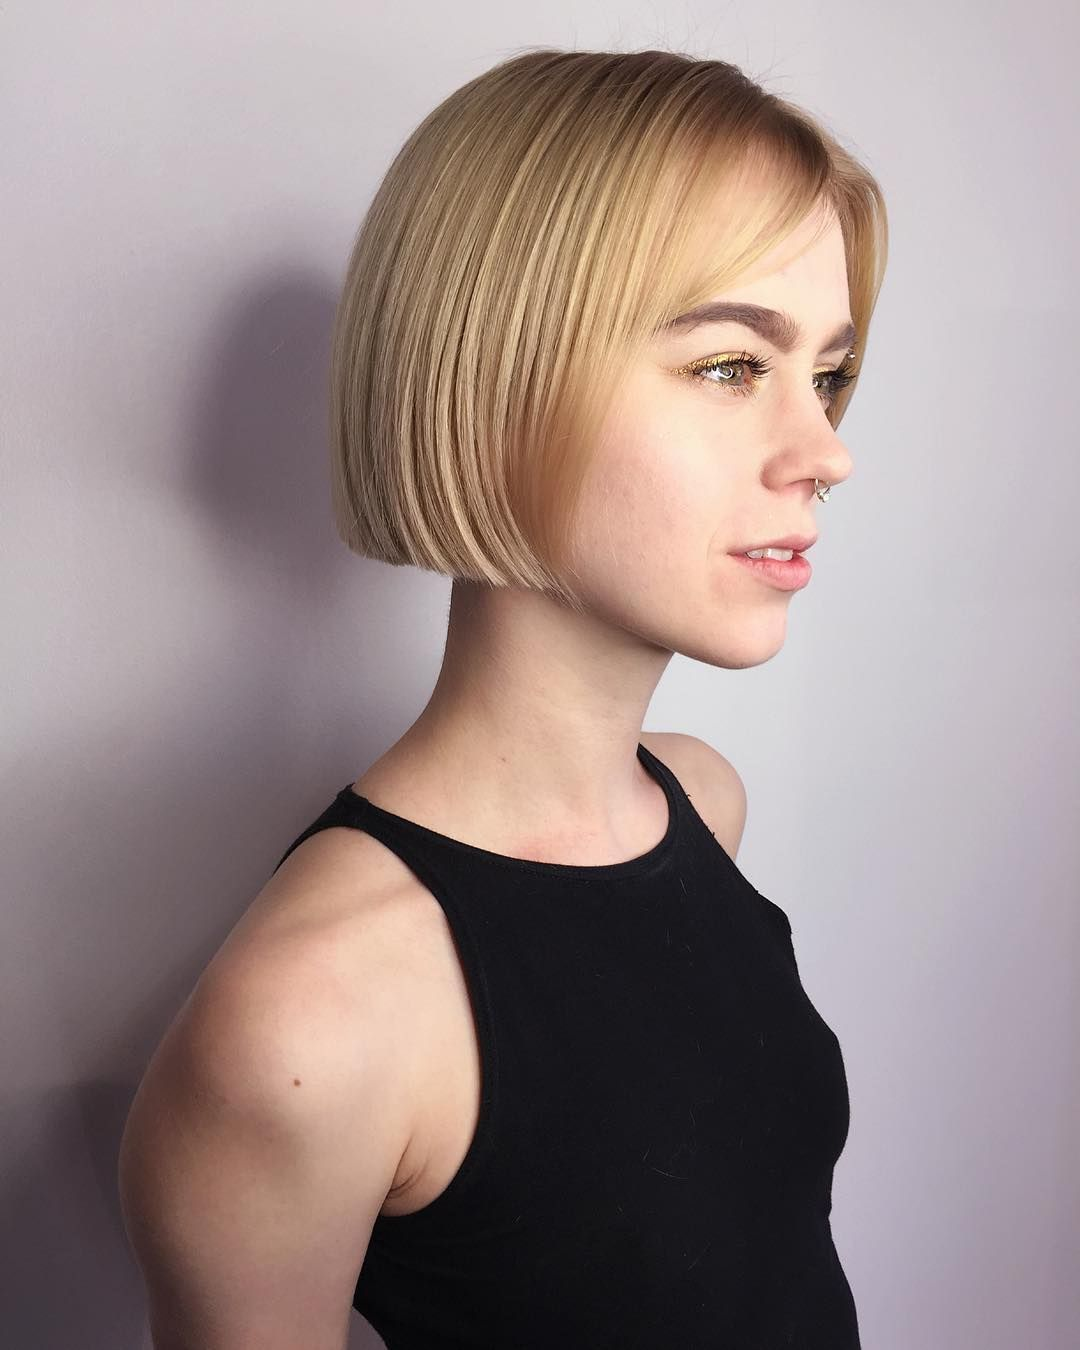 Short Blonde Blunt Bob With Parted Bangs The Latest Hairstyles For Men And Women 2020 Hairstyleology Blunt Bob With Bangs Blunt Bob Short Hair Styles